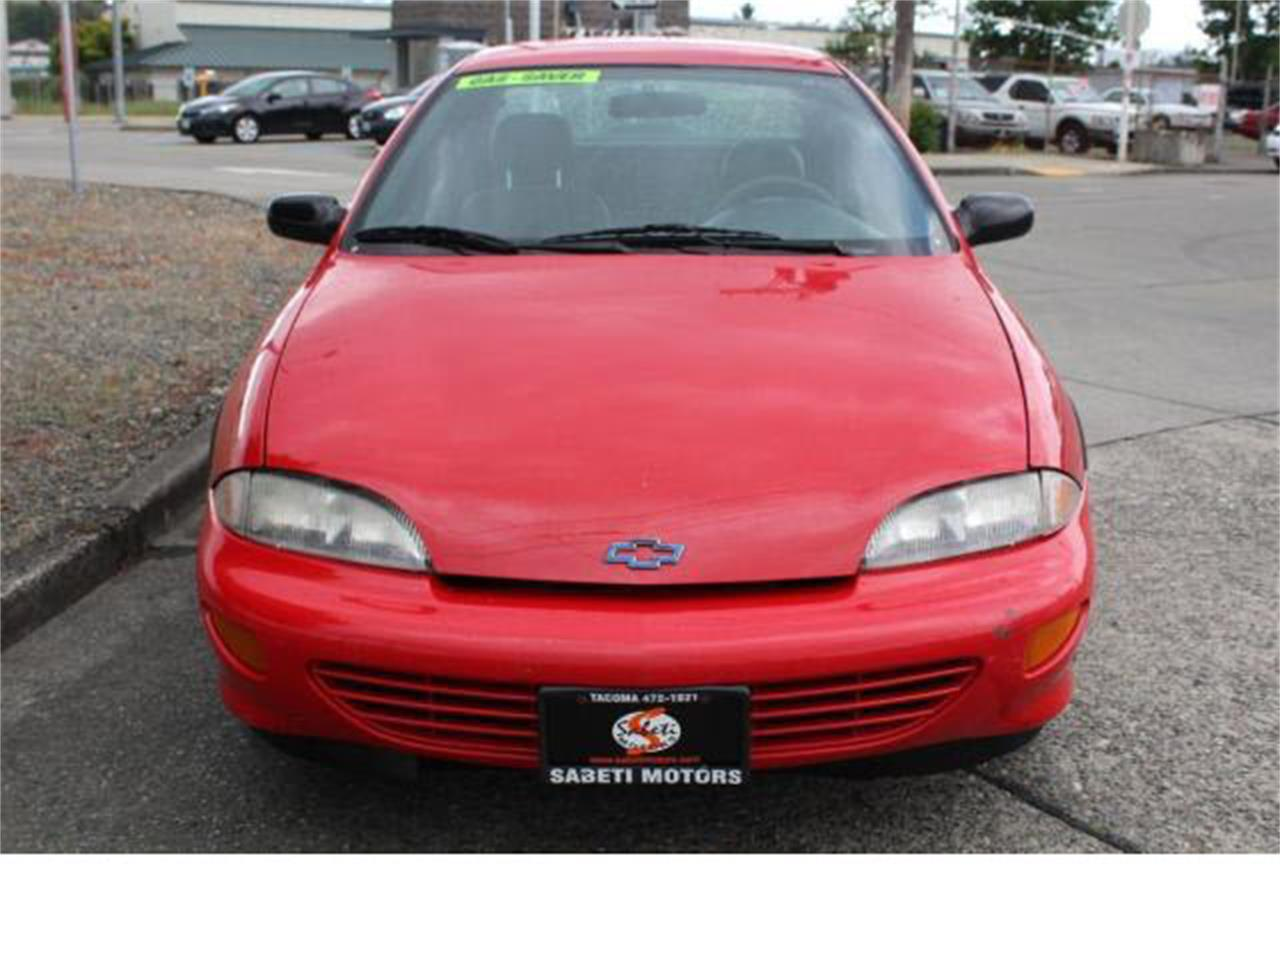 Large Picture of 1998 Chevrolet Cavalier Offered by Sabeti Motors - M5PO